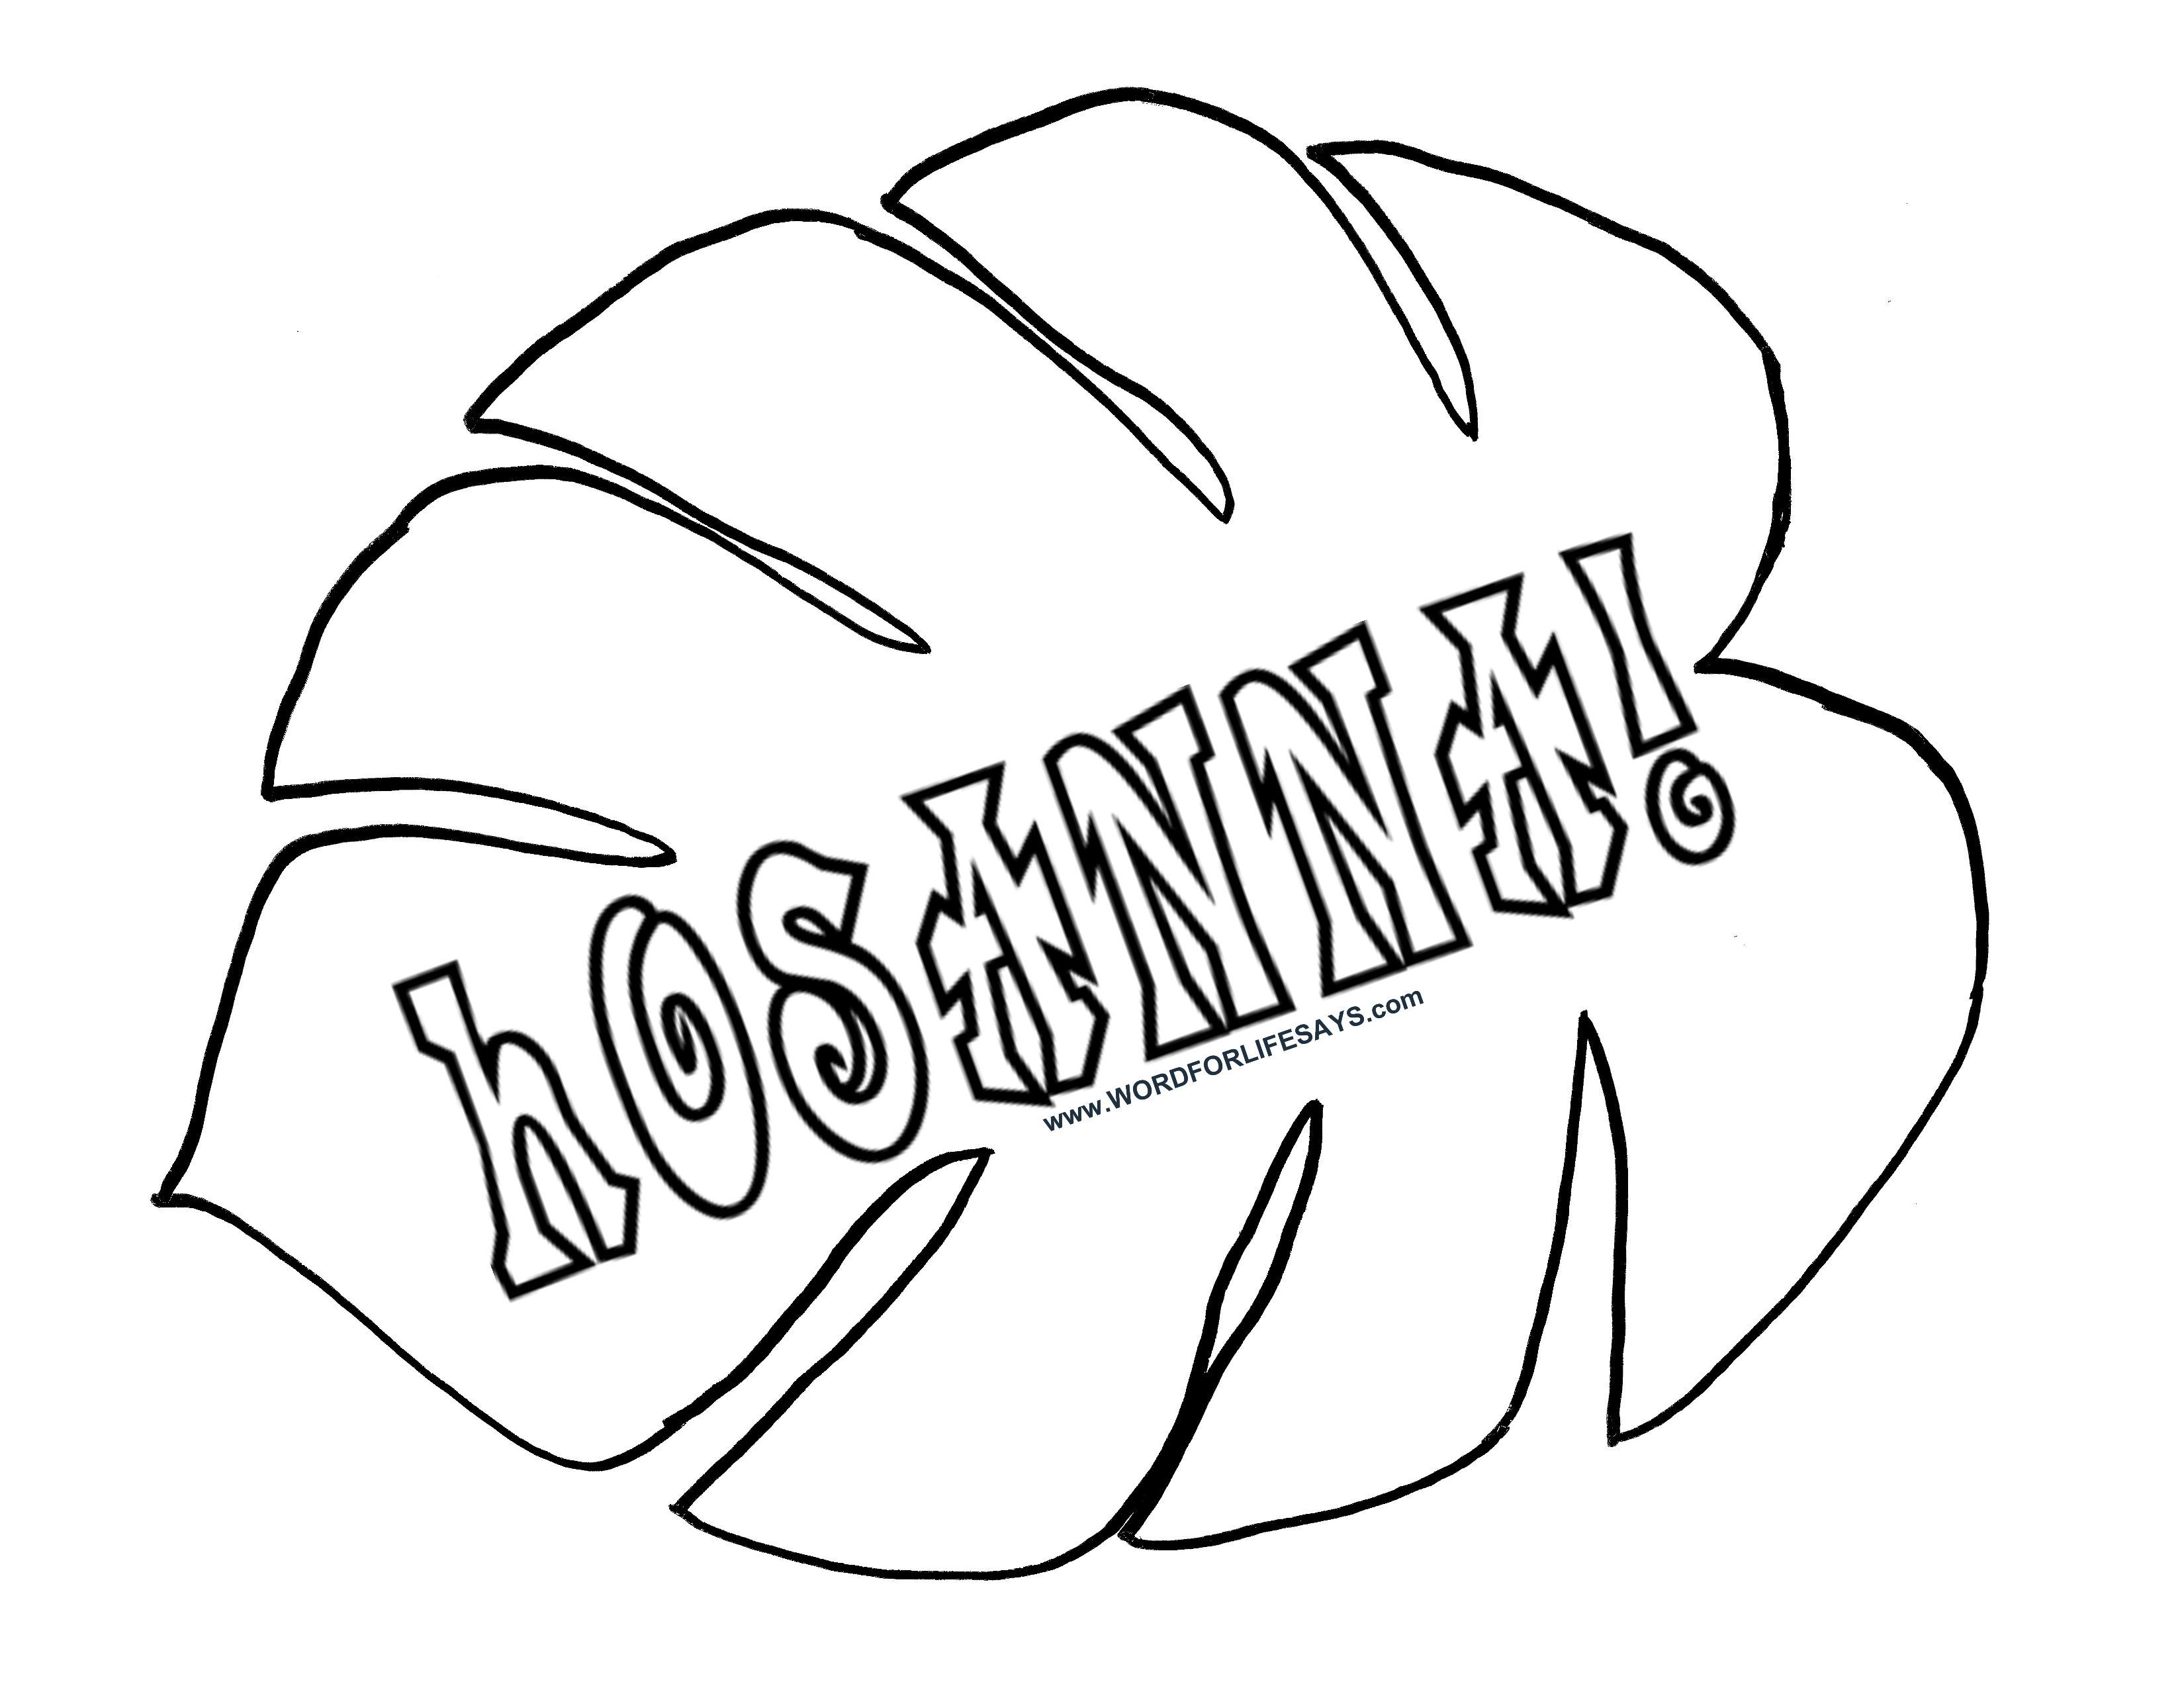 Free coloring pages for palm sunday - Hosanna Palm Leaf For Palm Sunday 001